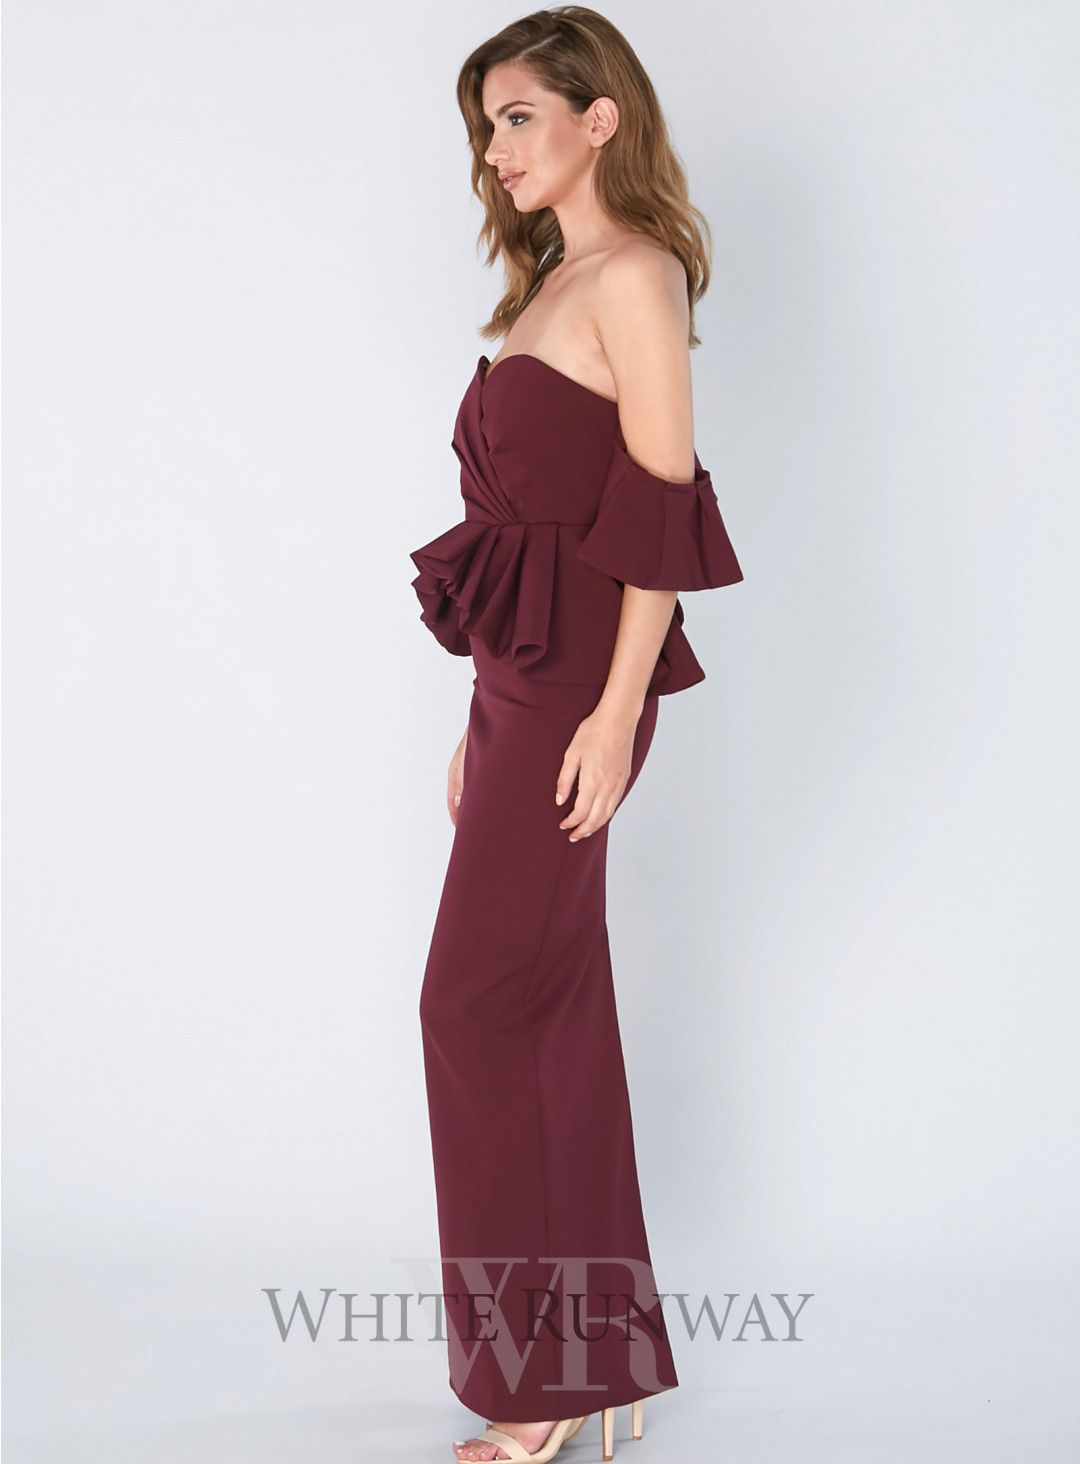 0a7f7587df6d Reina Gown. A gorgeous full length dress by Samantha Rose. An off shoulder  style featuring ruffle sleeves and peplum waistline.